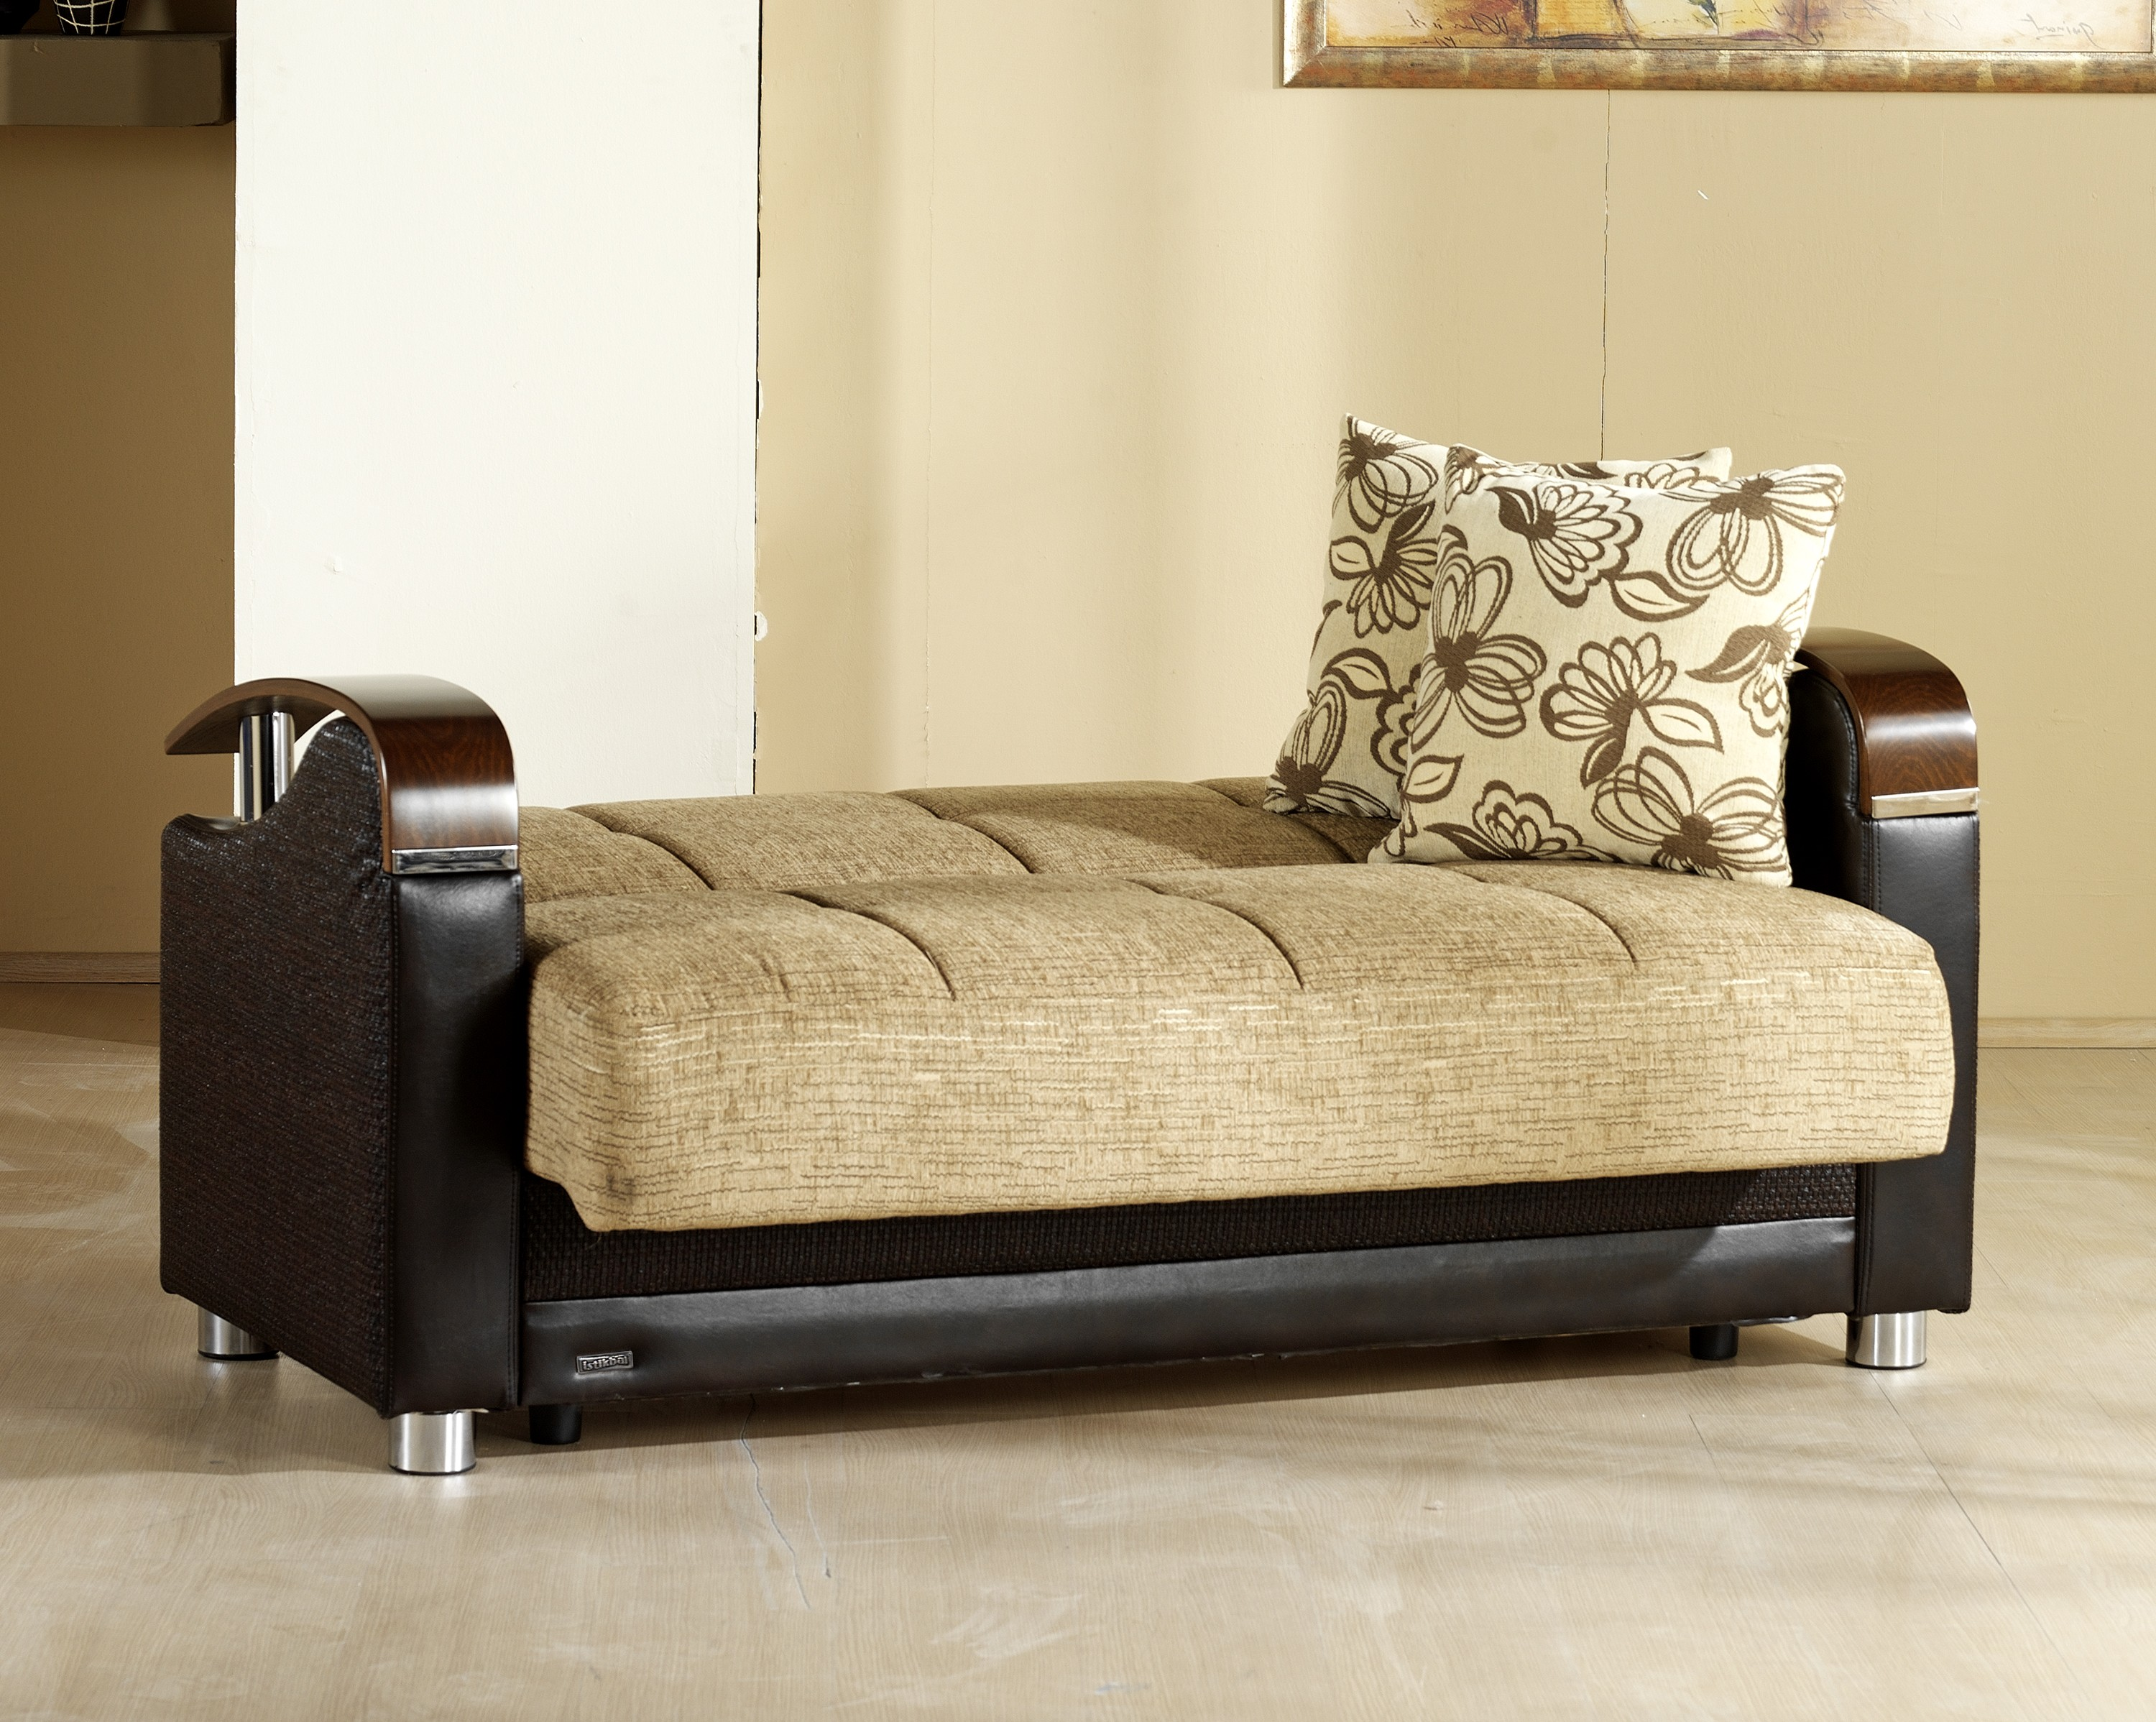 chicago sofa bed king luna fulya brown convertible with storage